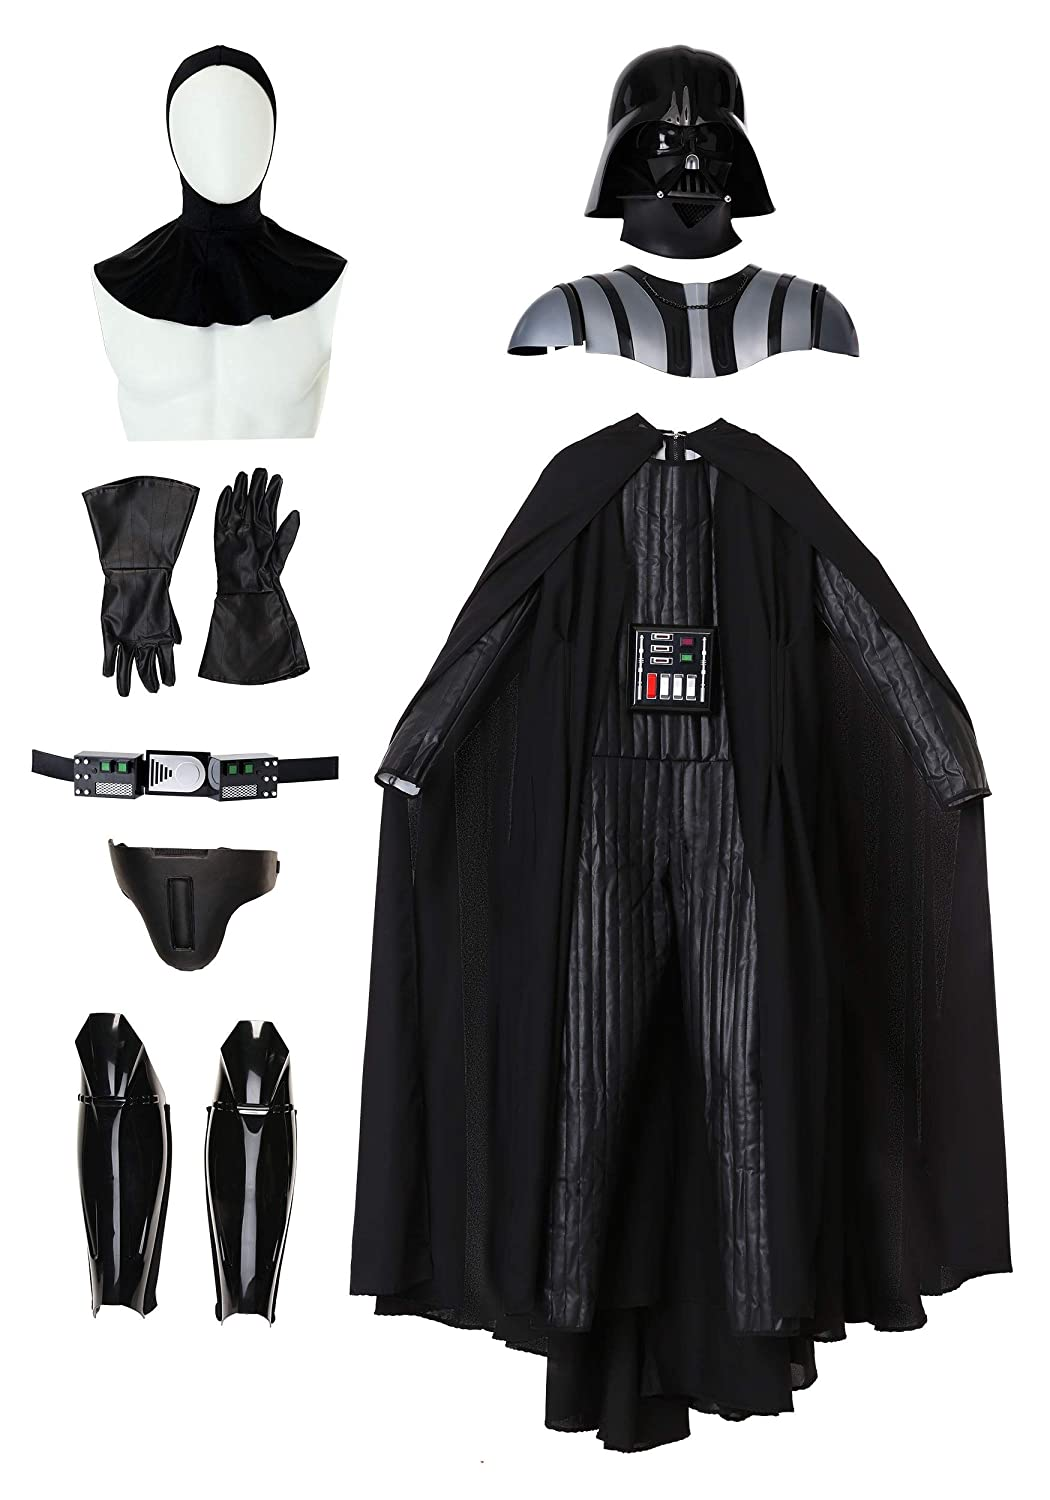 Star Wars Darth Vader Collector s (Supreme) Edition para adulto: Amazon.es: Ropa y accesorios